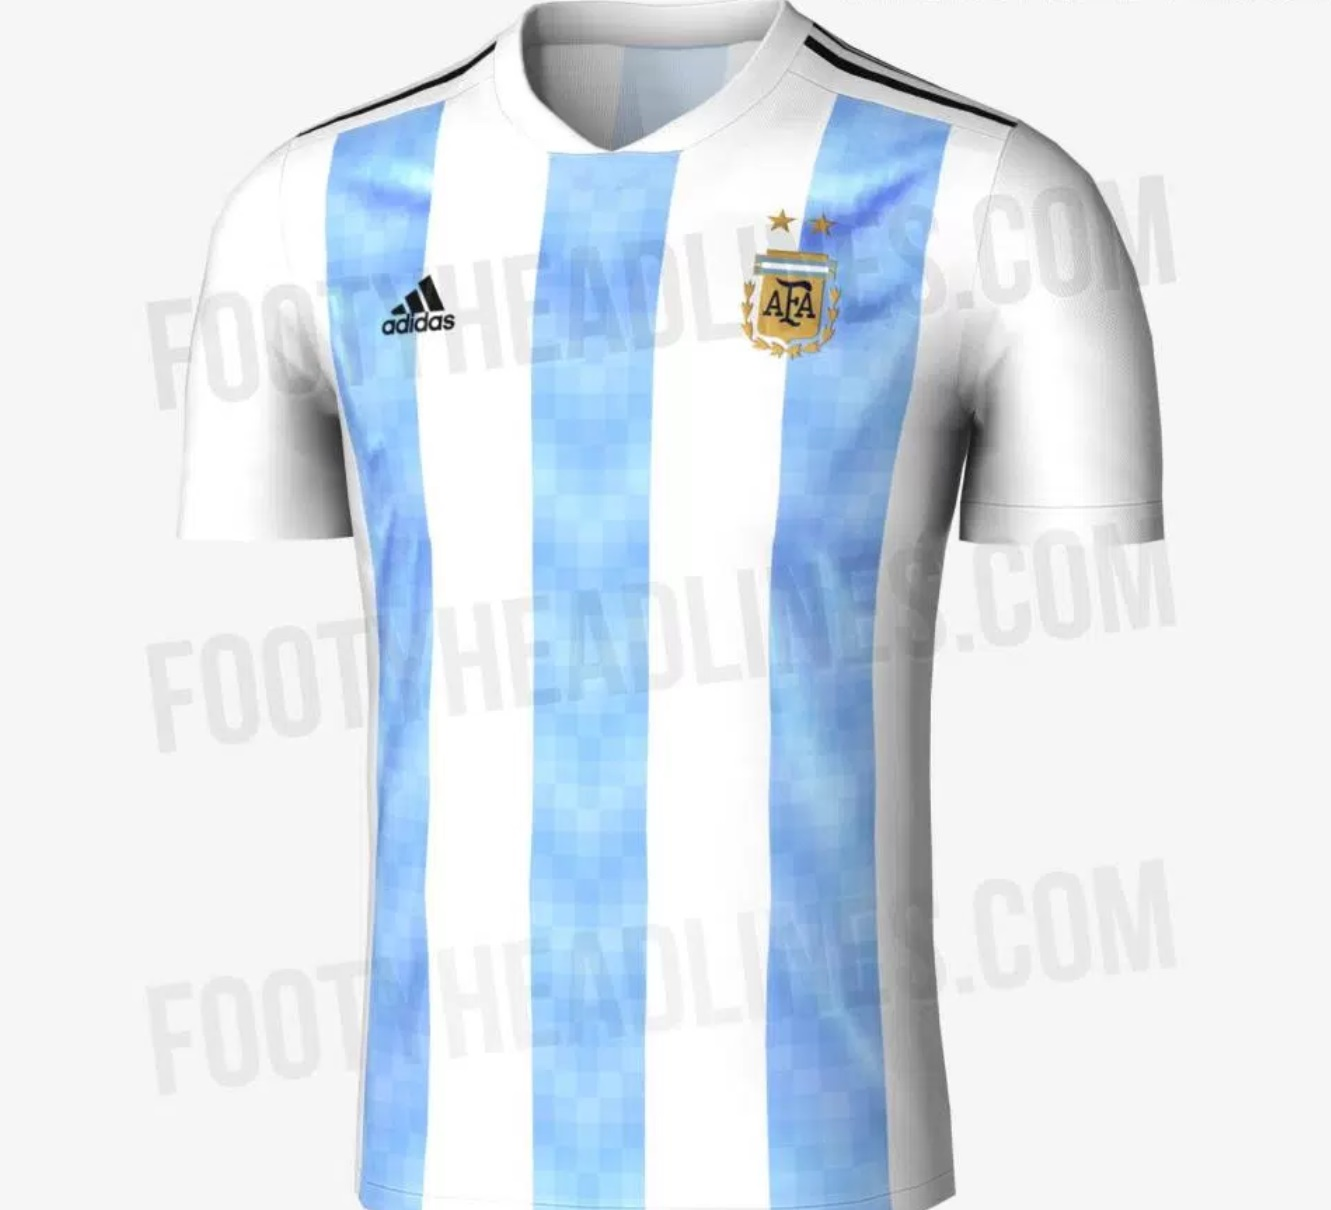 Home Kit of Argentina World Cup 2018